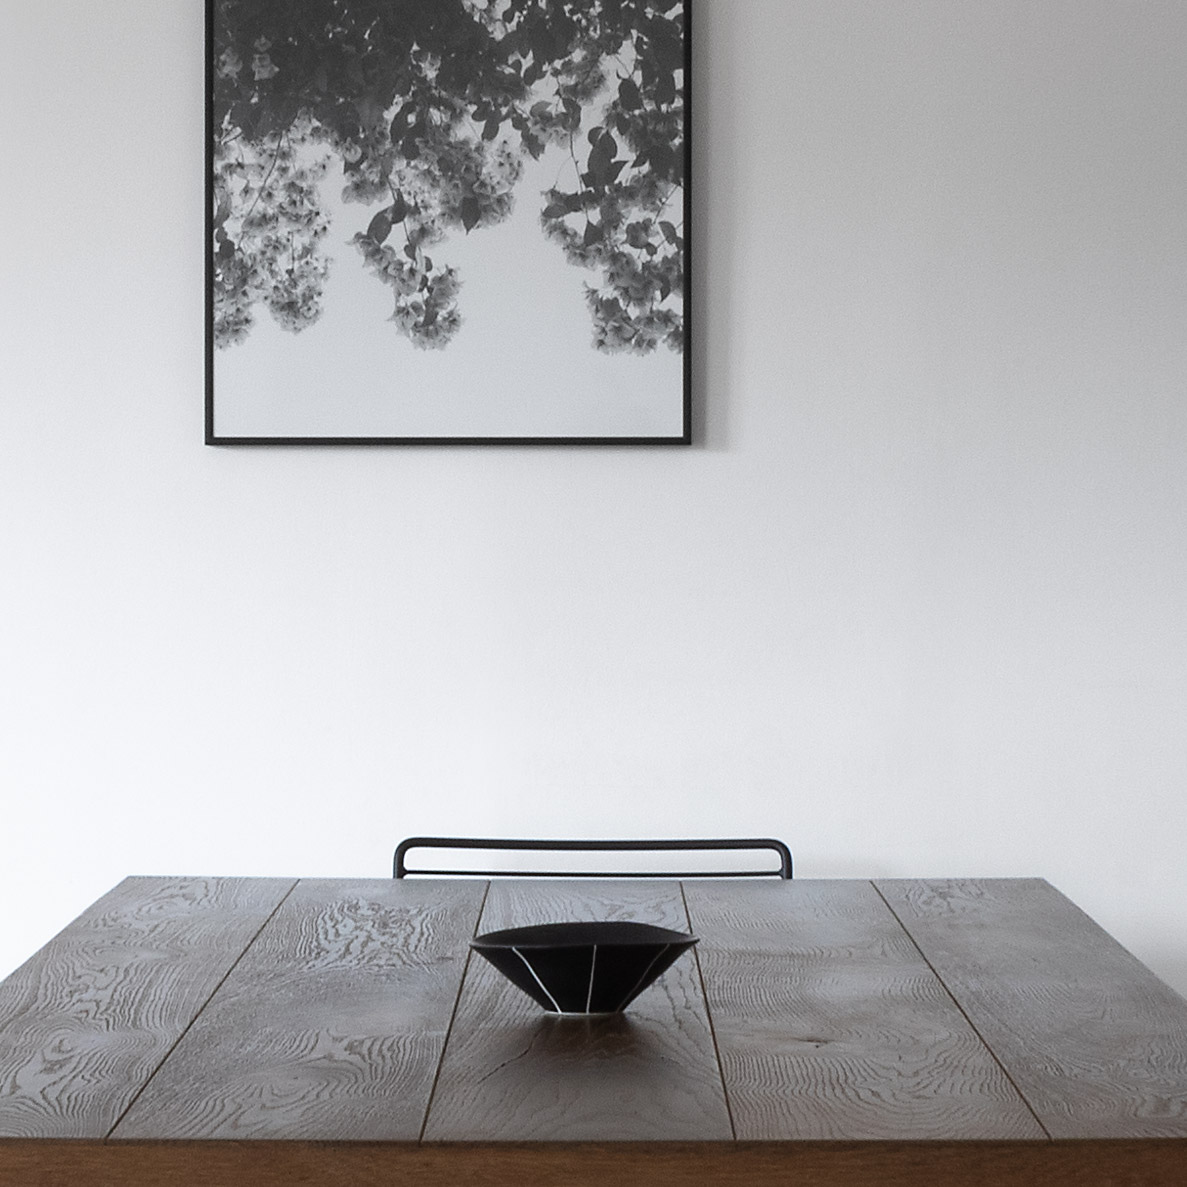 Oak table top with black Japanese bowl